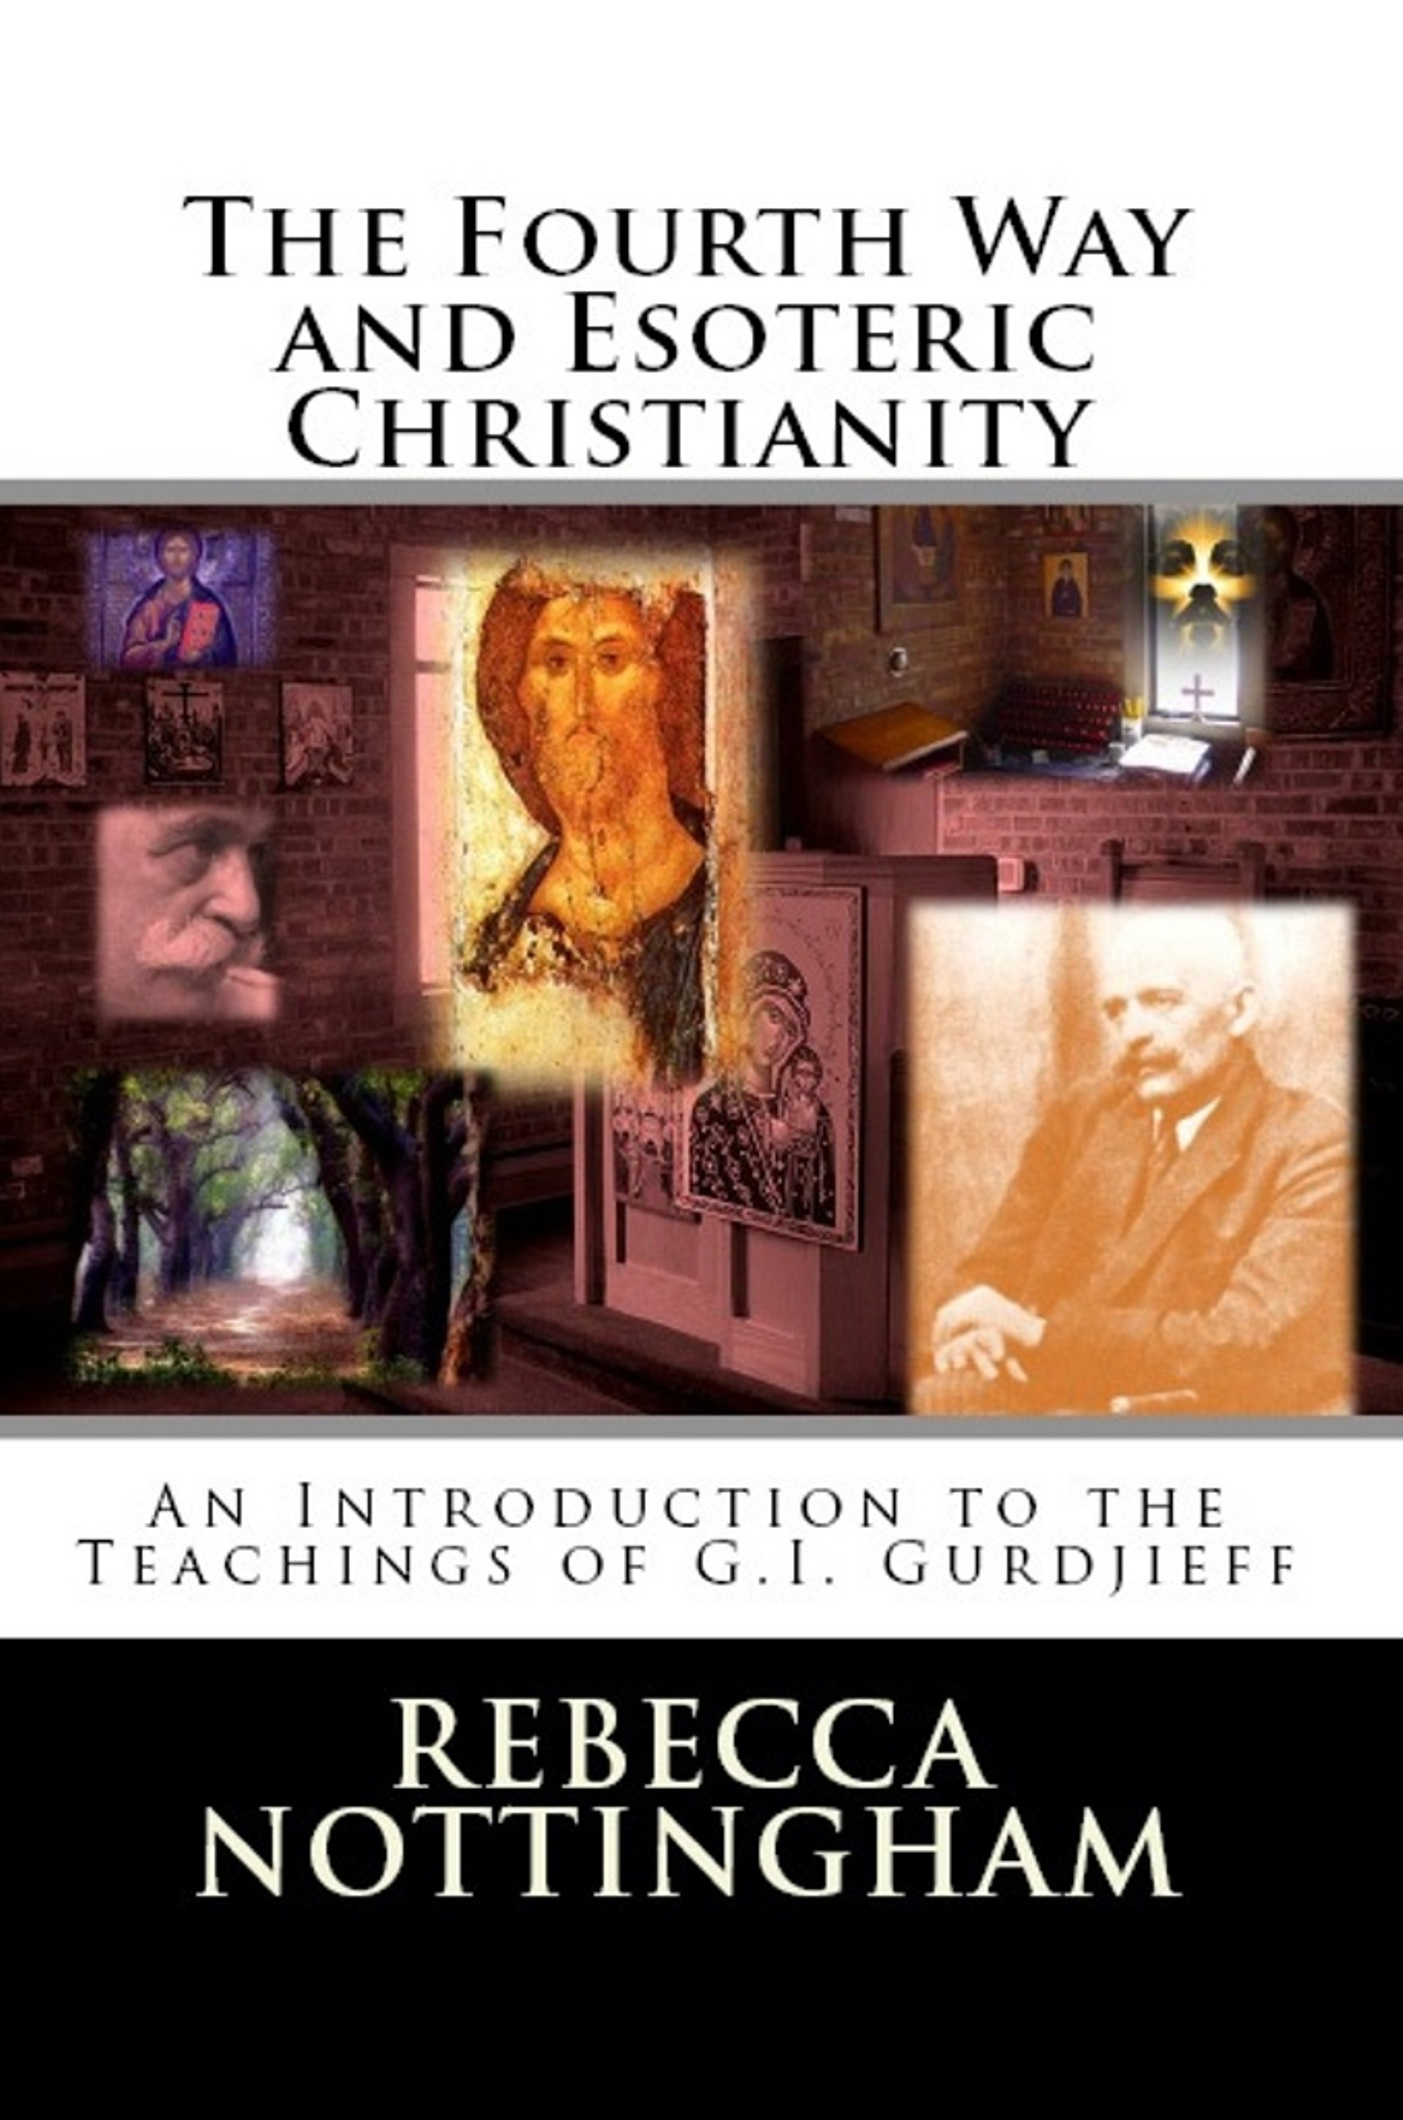 The Fourth Way and Esoteric Christianity: An Introduction to the Teachings of G.I. Gurdjieff By: Rebecca Nottingham